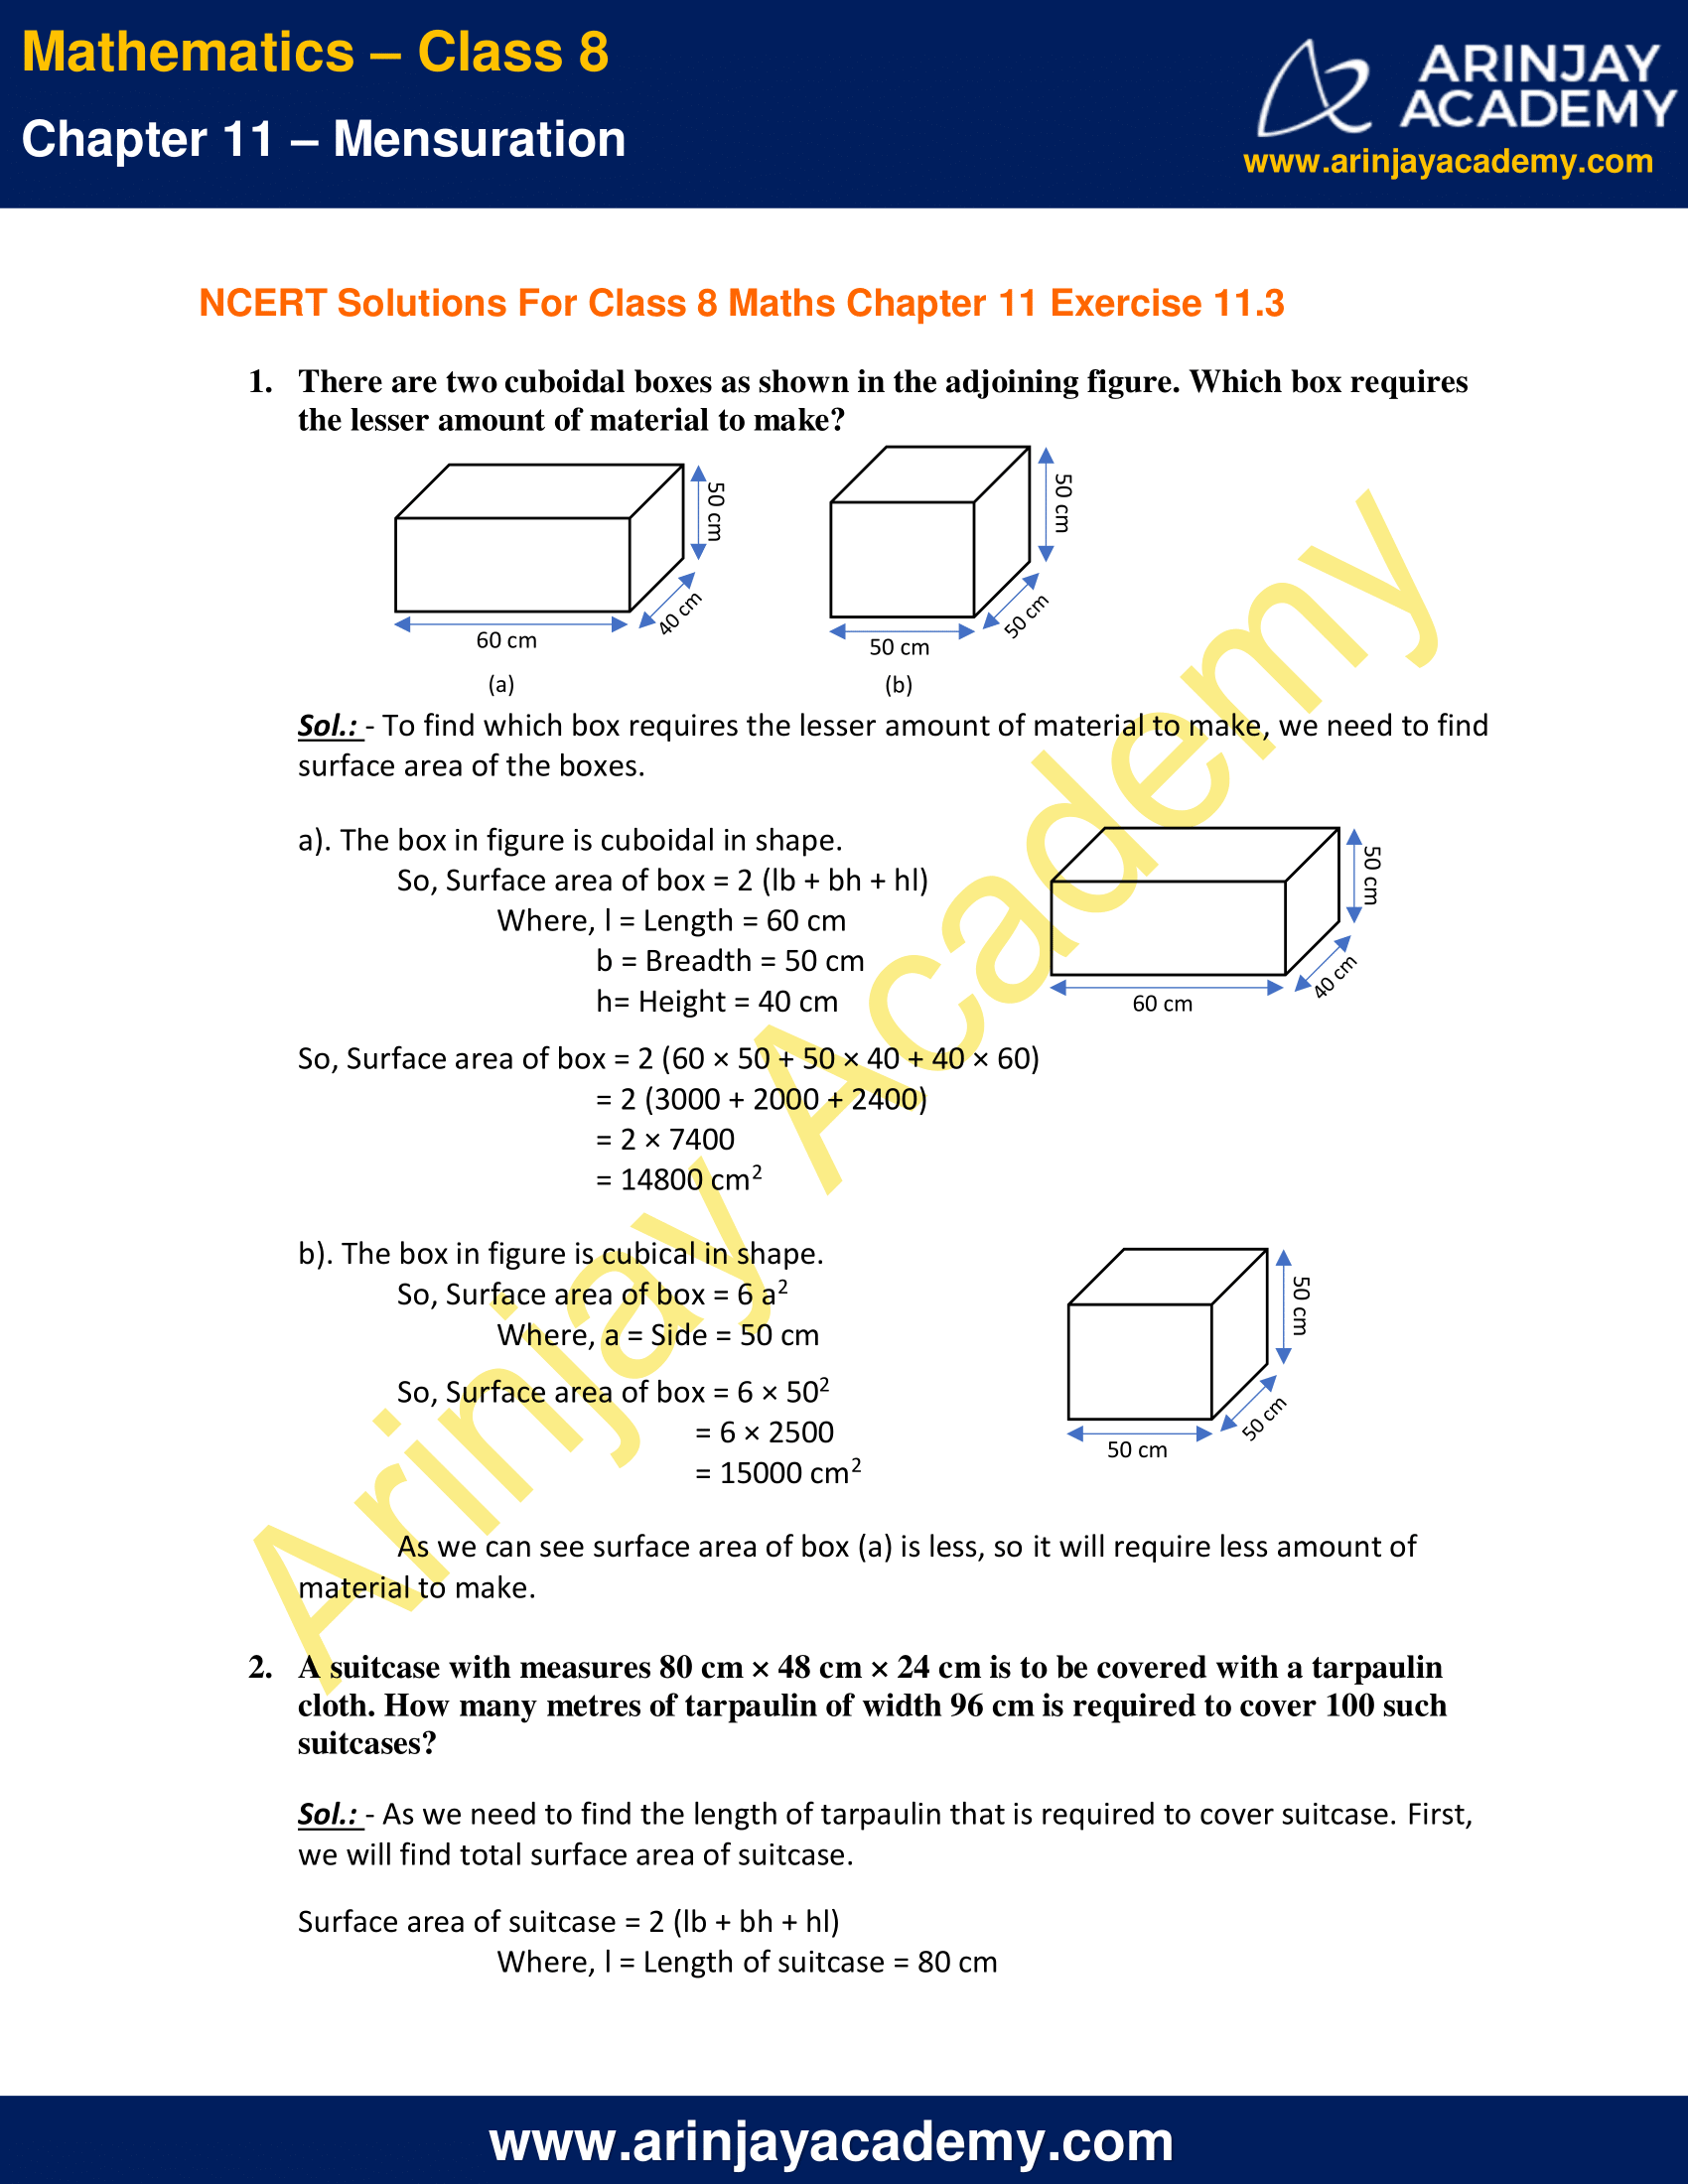 NCERT Solutions for Class 8 Maths Chapter 11 Exercise 11.3 image 1